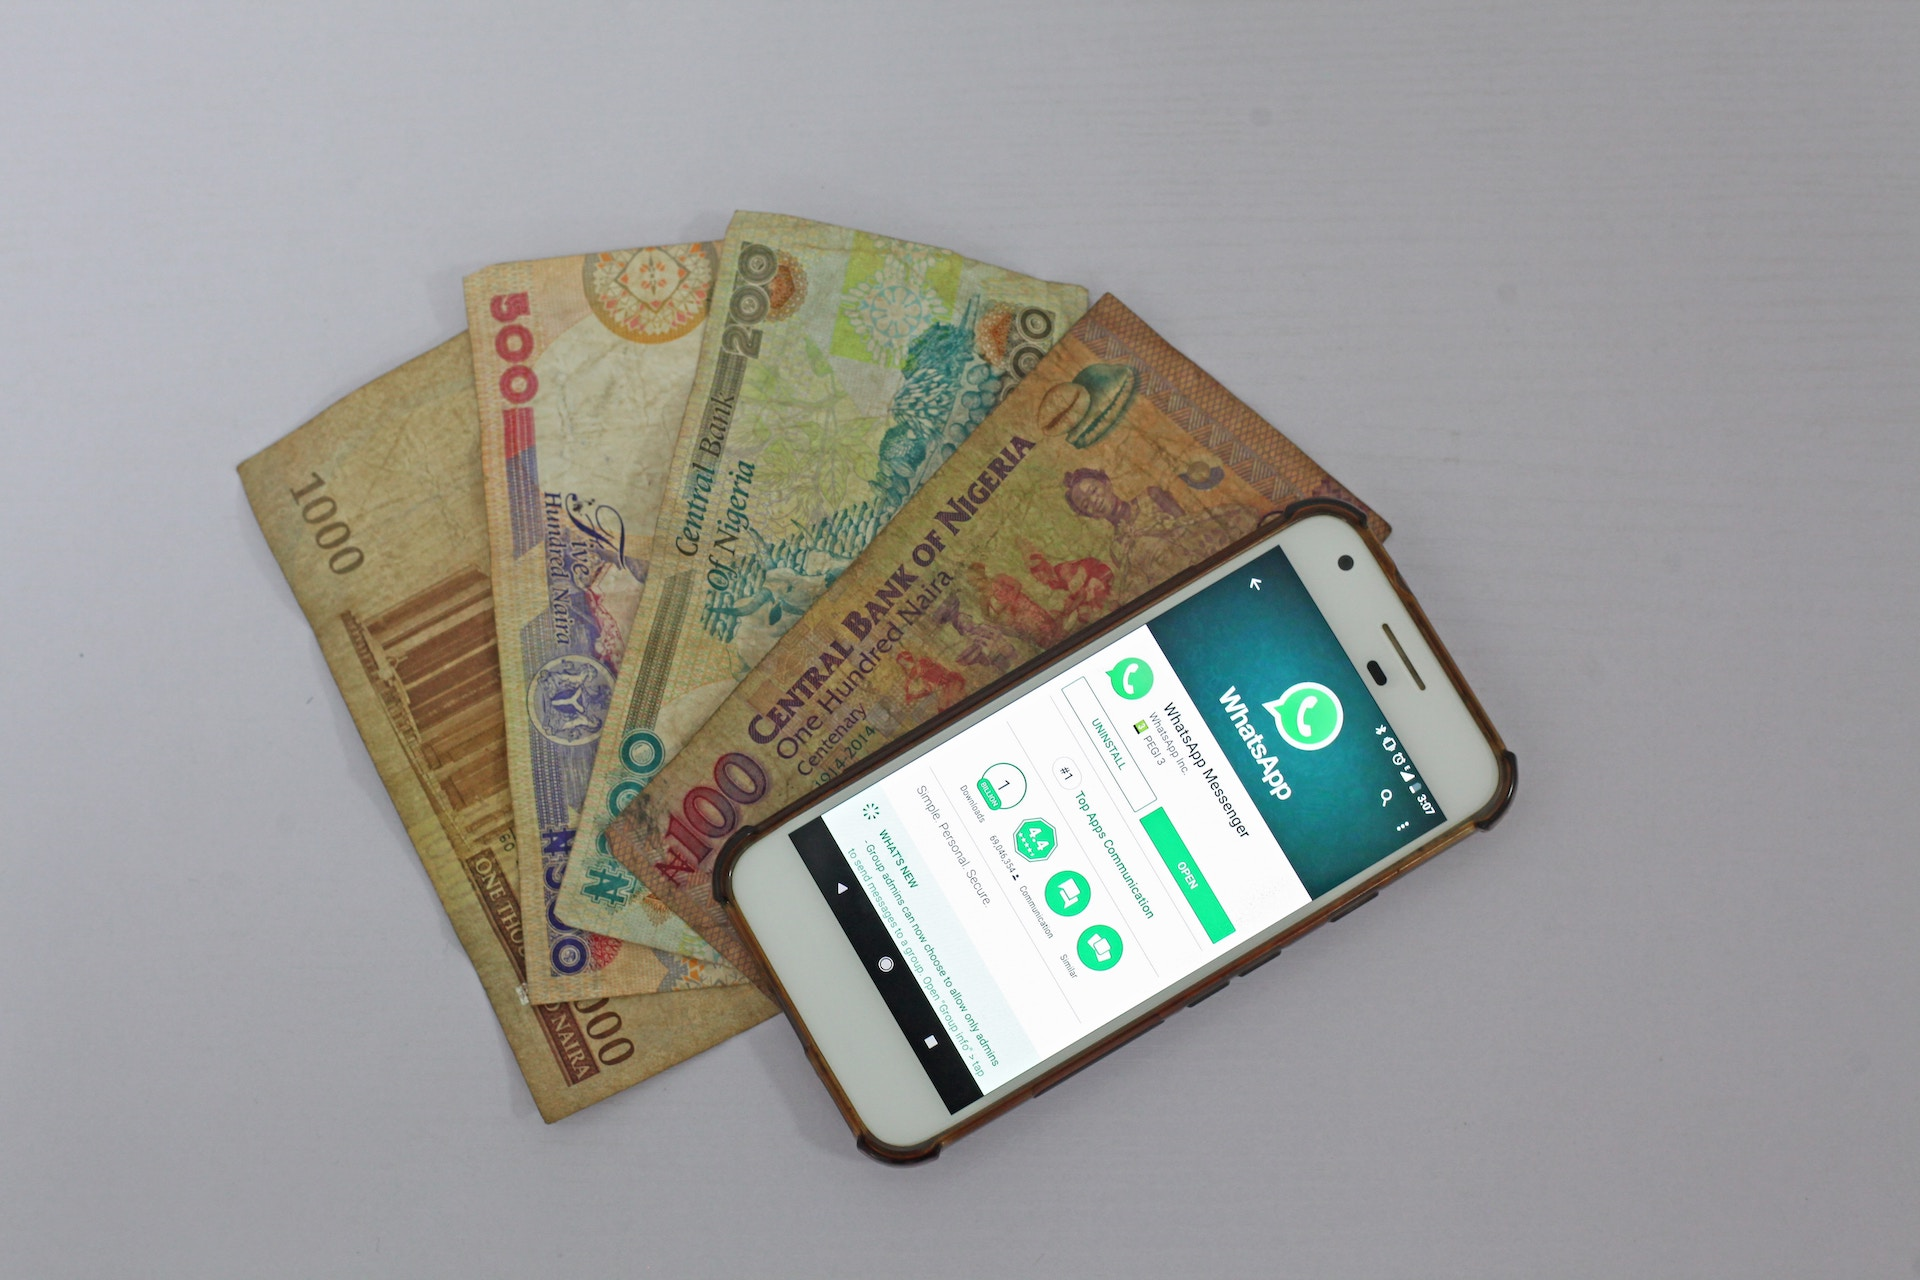 Whatsapp Pay ready to launch in India